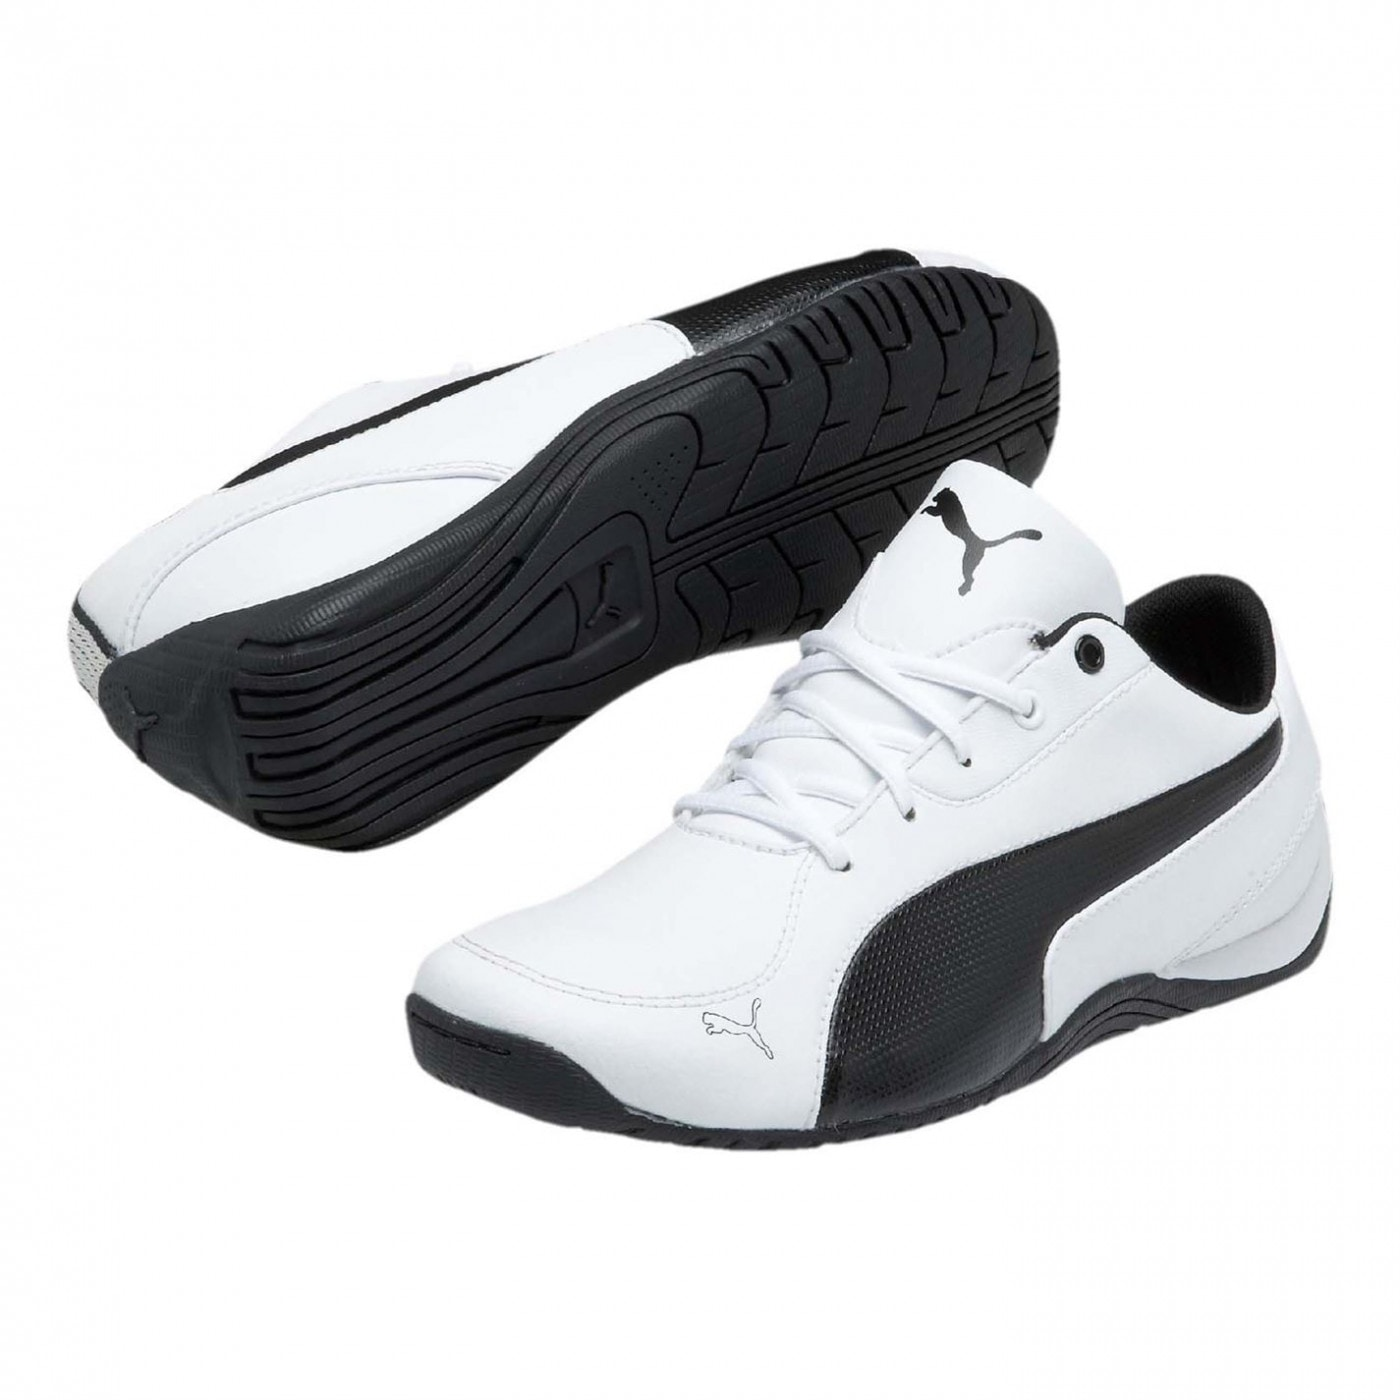 Puma Drift Cat 5 Junior Trainers